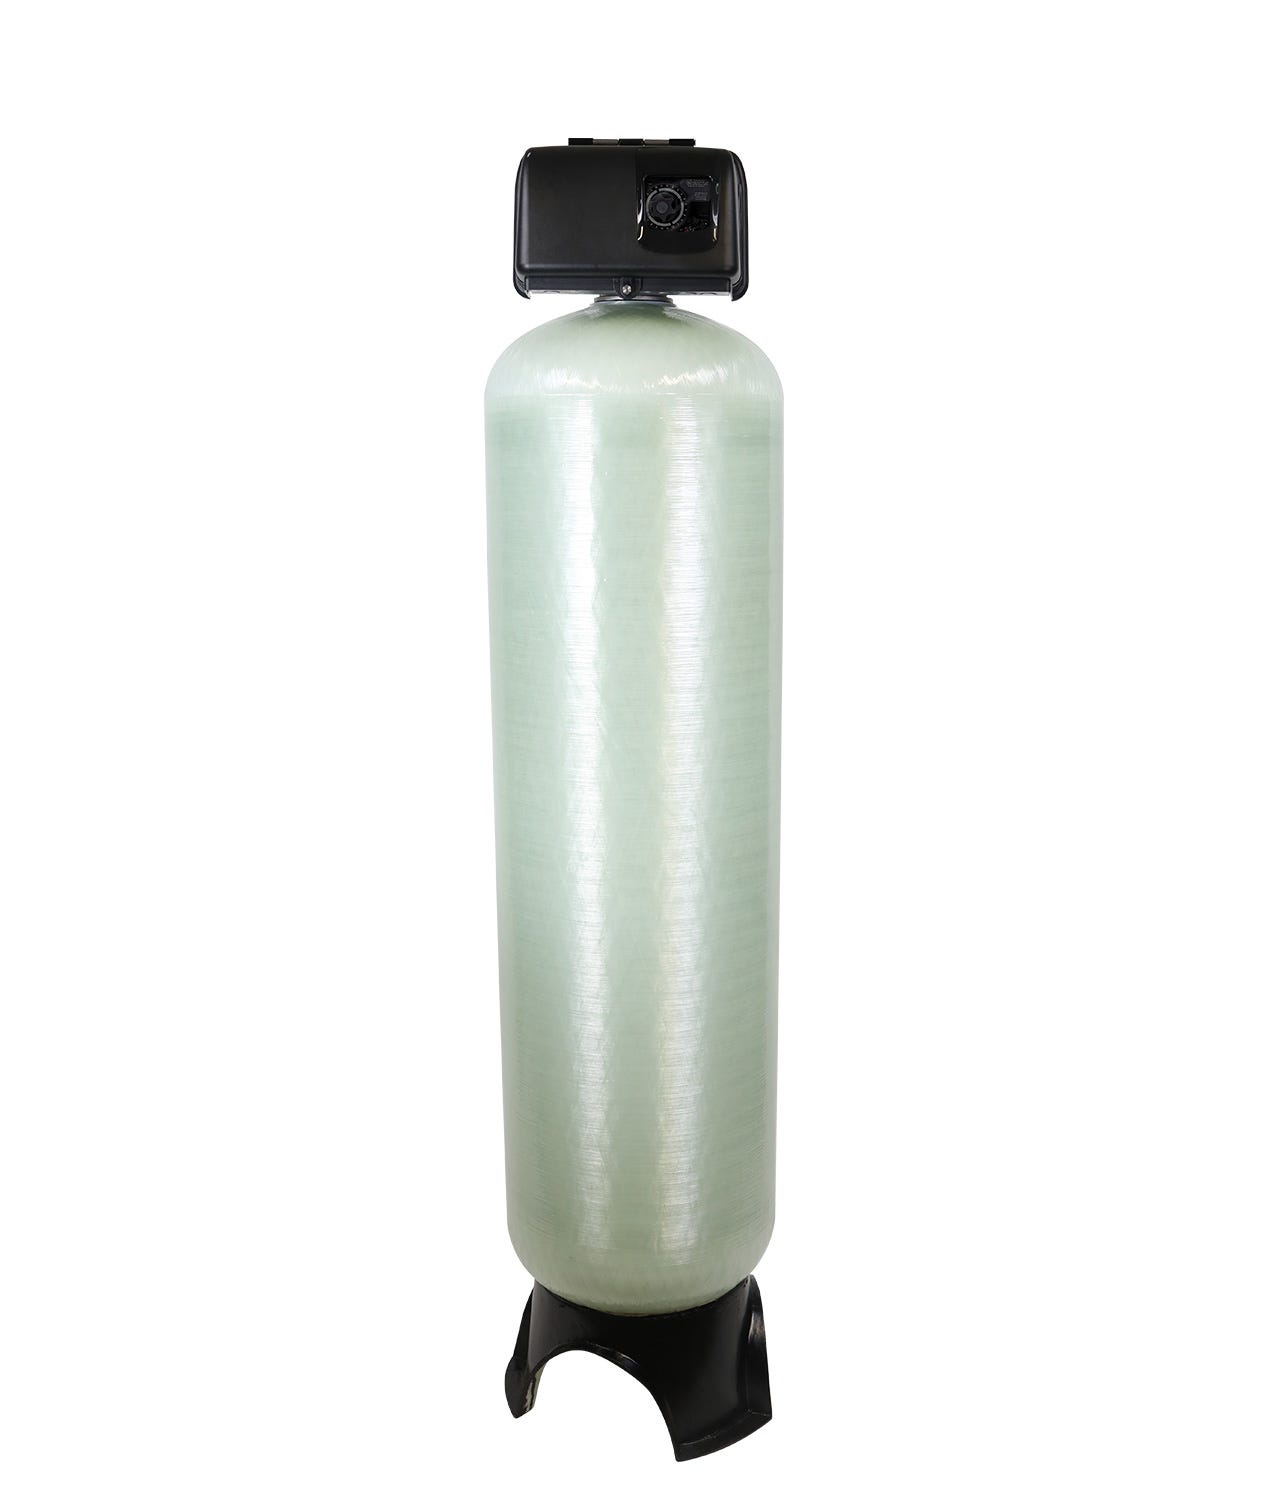 Us Water Backwashing Carbon Filter 1 5 Inch 10 30 Gpm